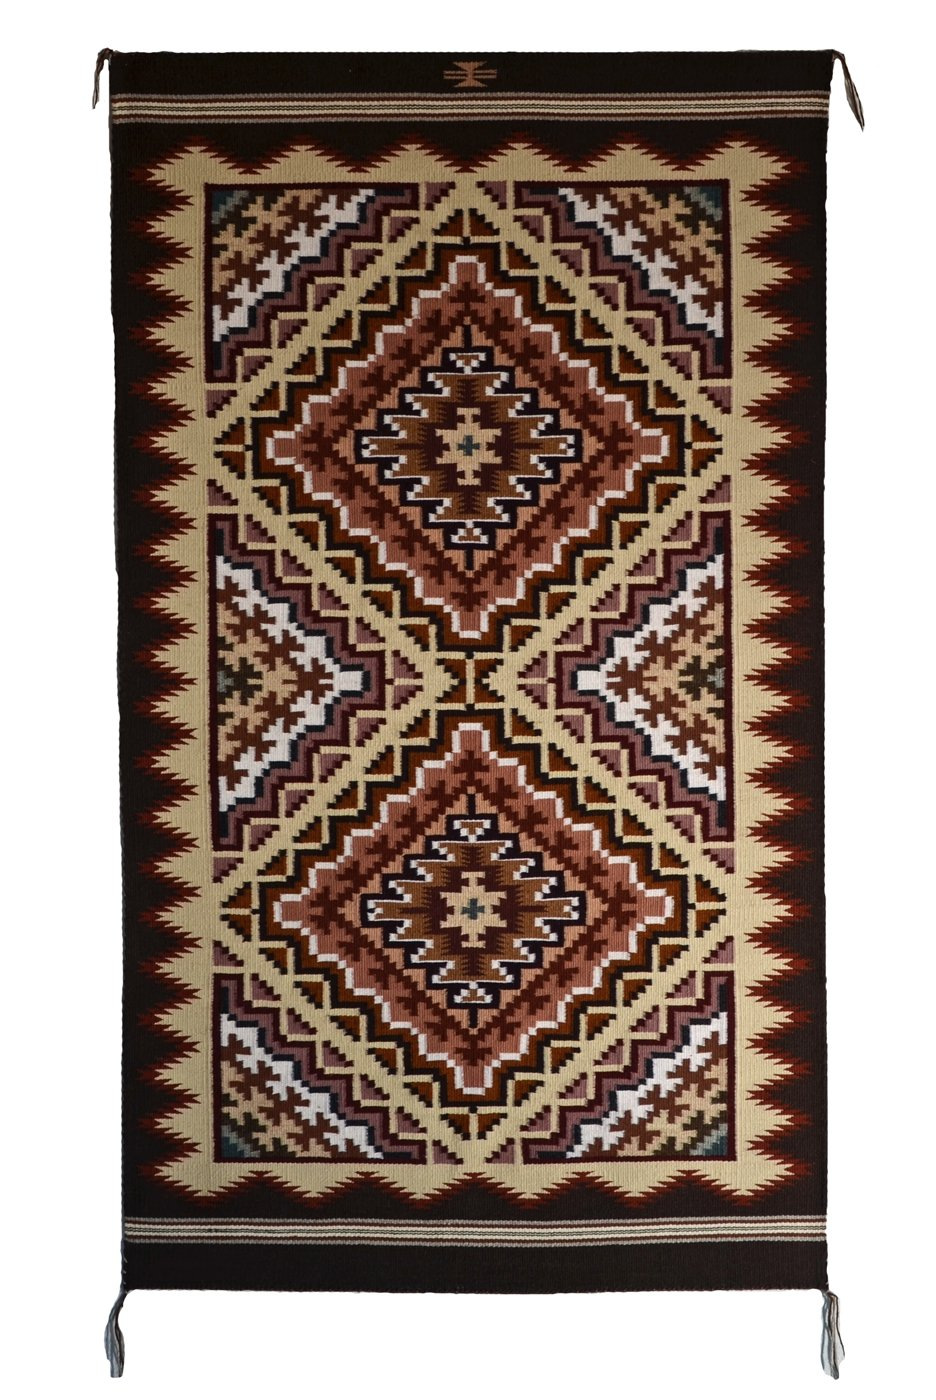 SOLD Burntwater American Indian Rug : Cara Yazzie Gorman : 3407 - Getzwiller's Nizhoni Ranch Gallery